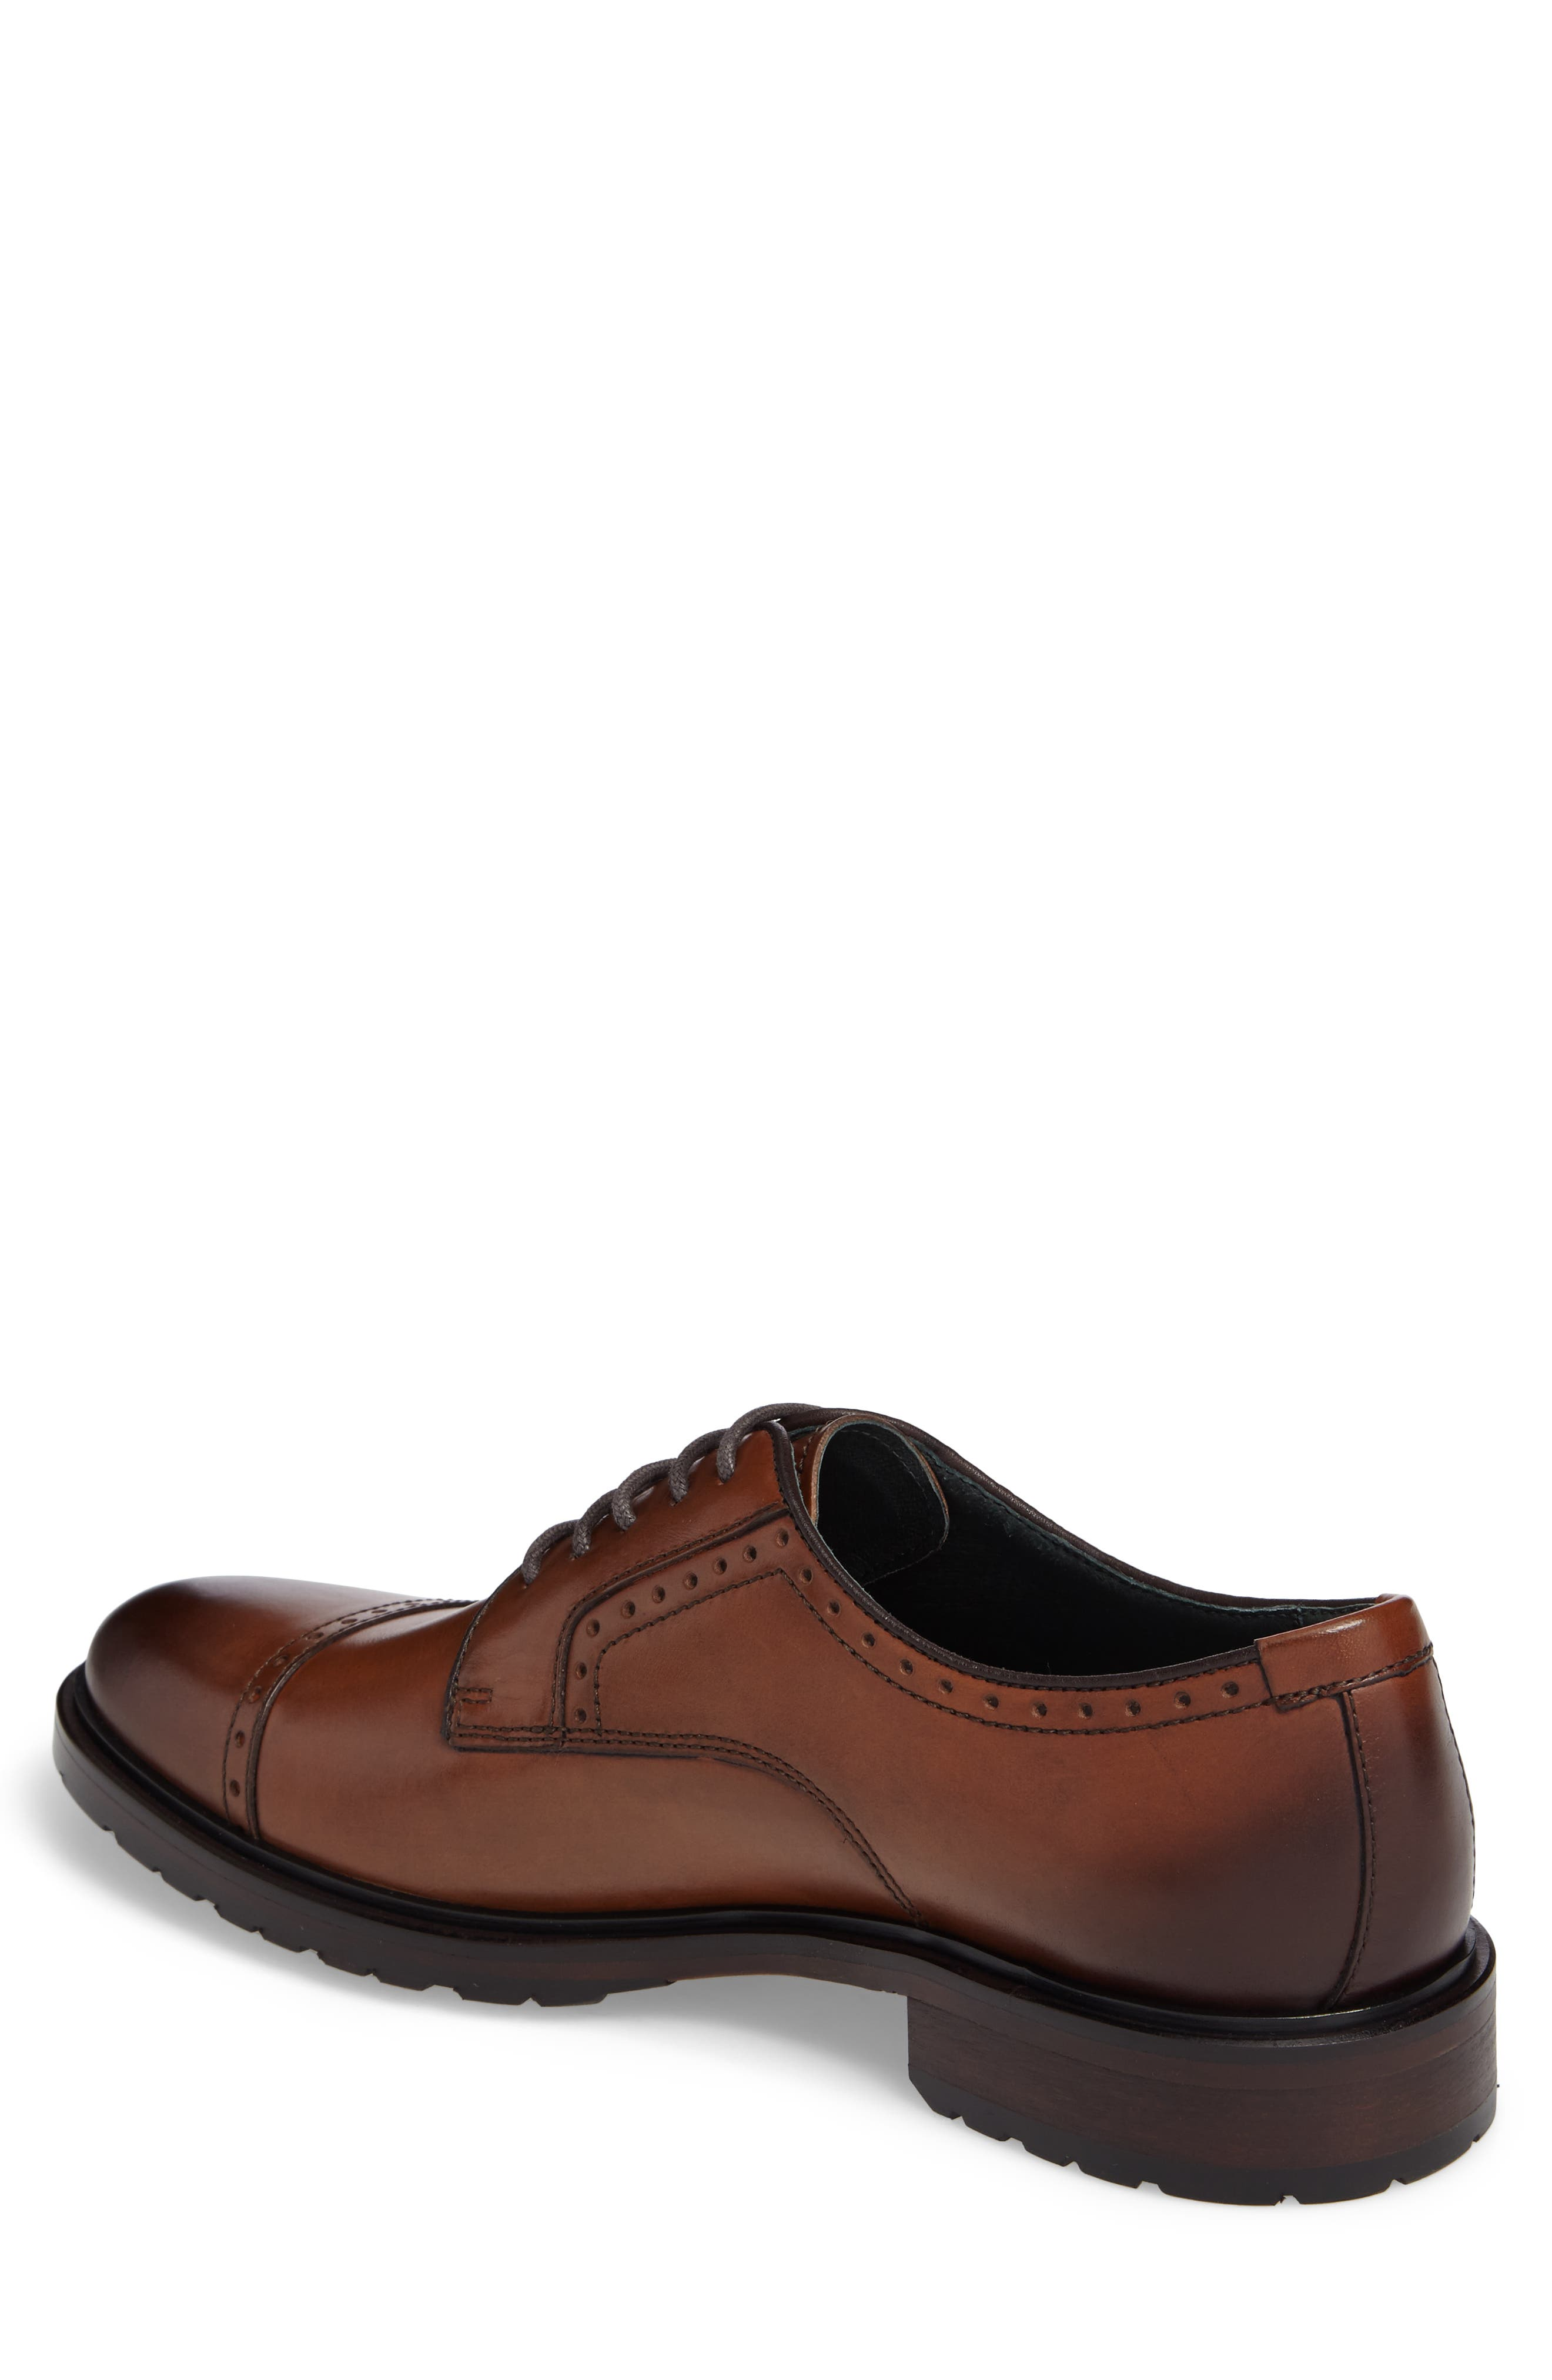 Myles Cap Toe Derby,                             Alternate thumbnail 2, color,                             211